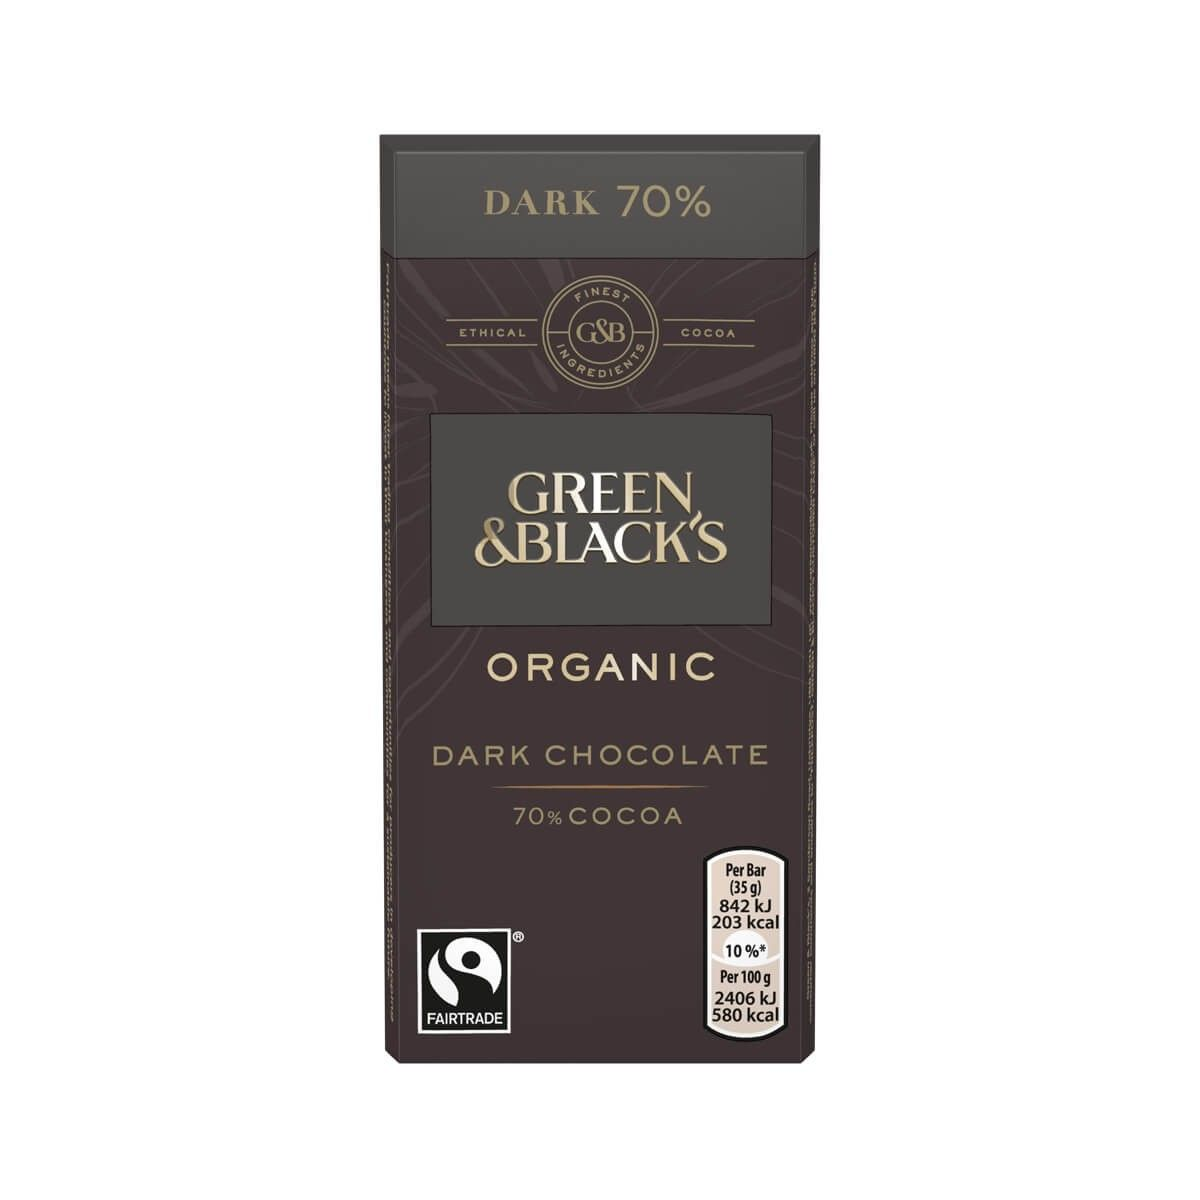 Green & Blacks Dark Chocolate